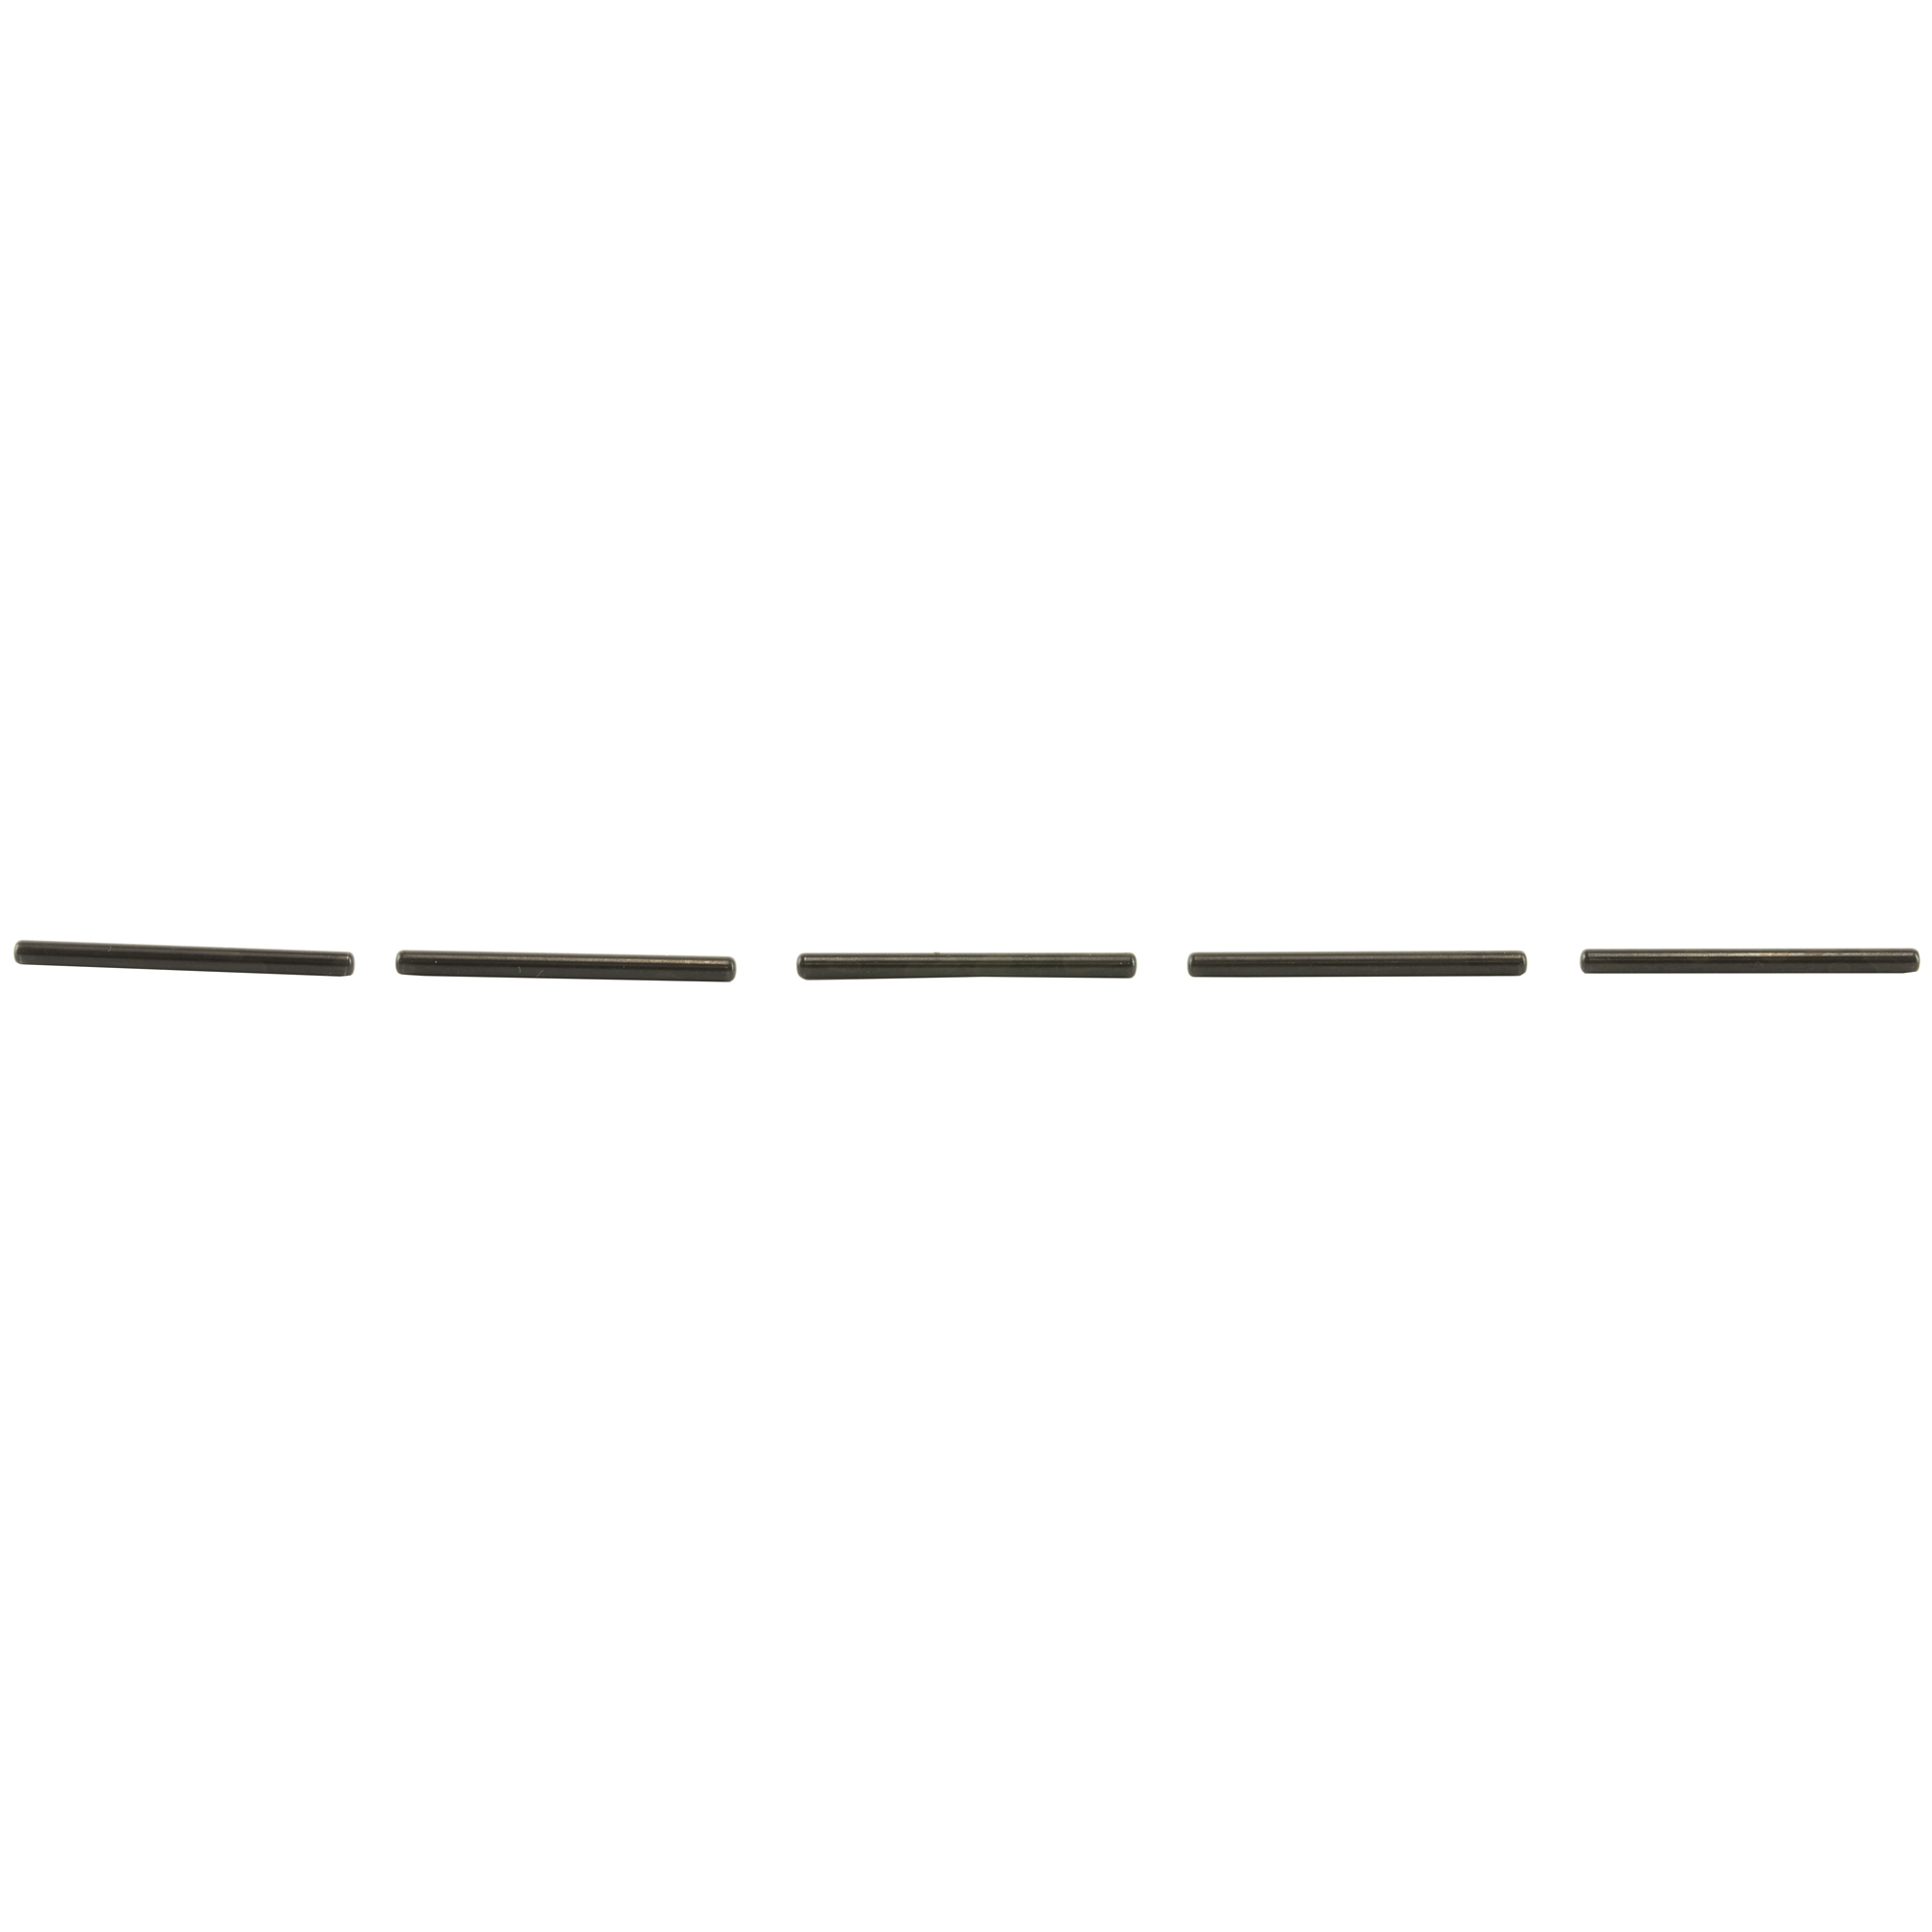 RCBS(R) offers a variety of decapping pins for all reloading needs.